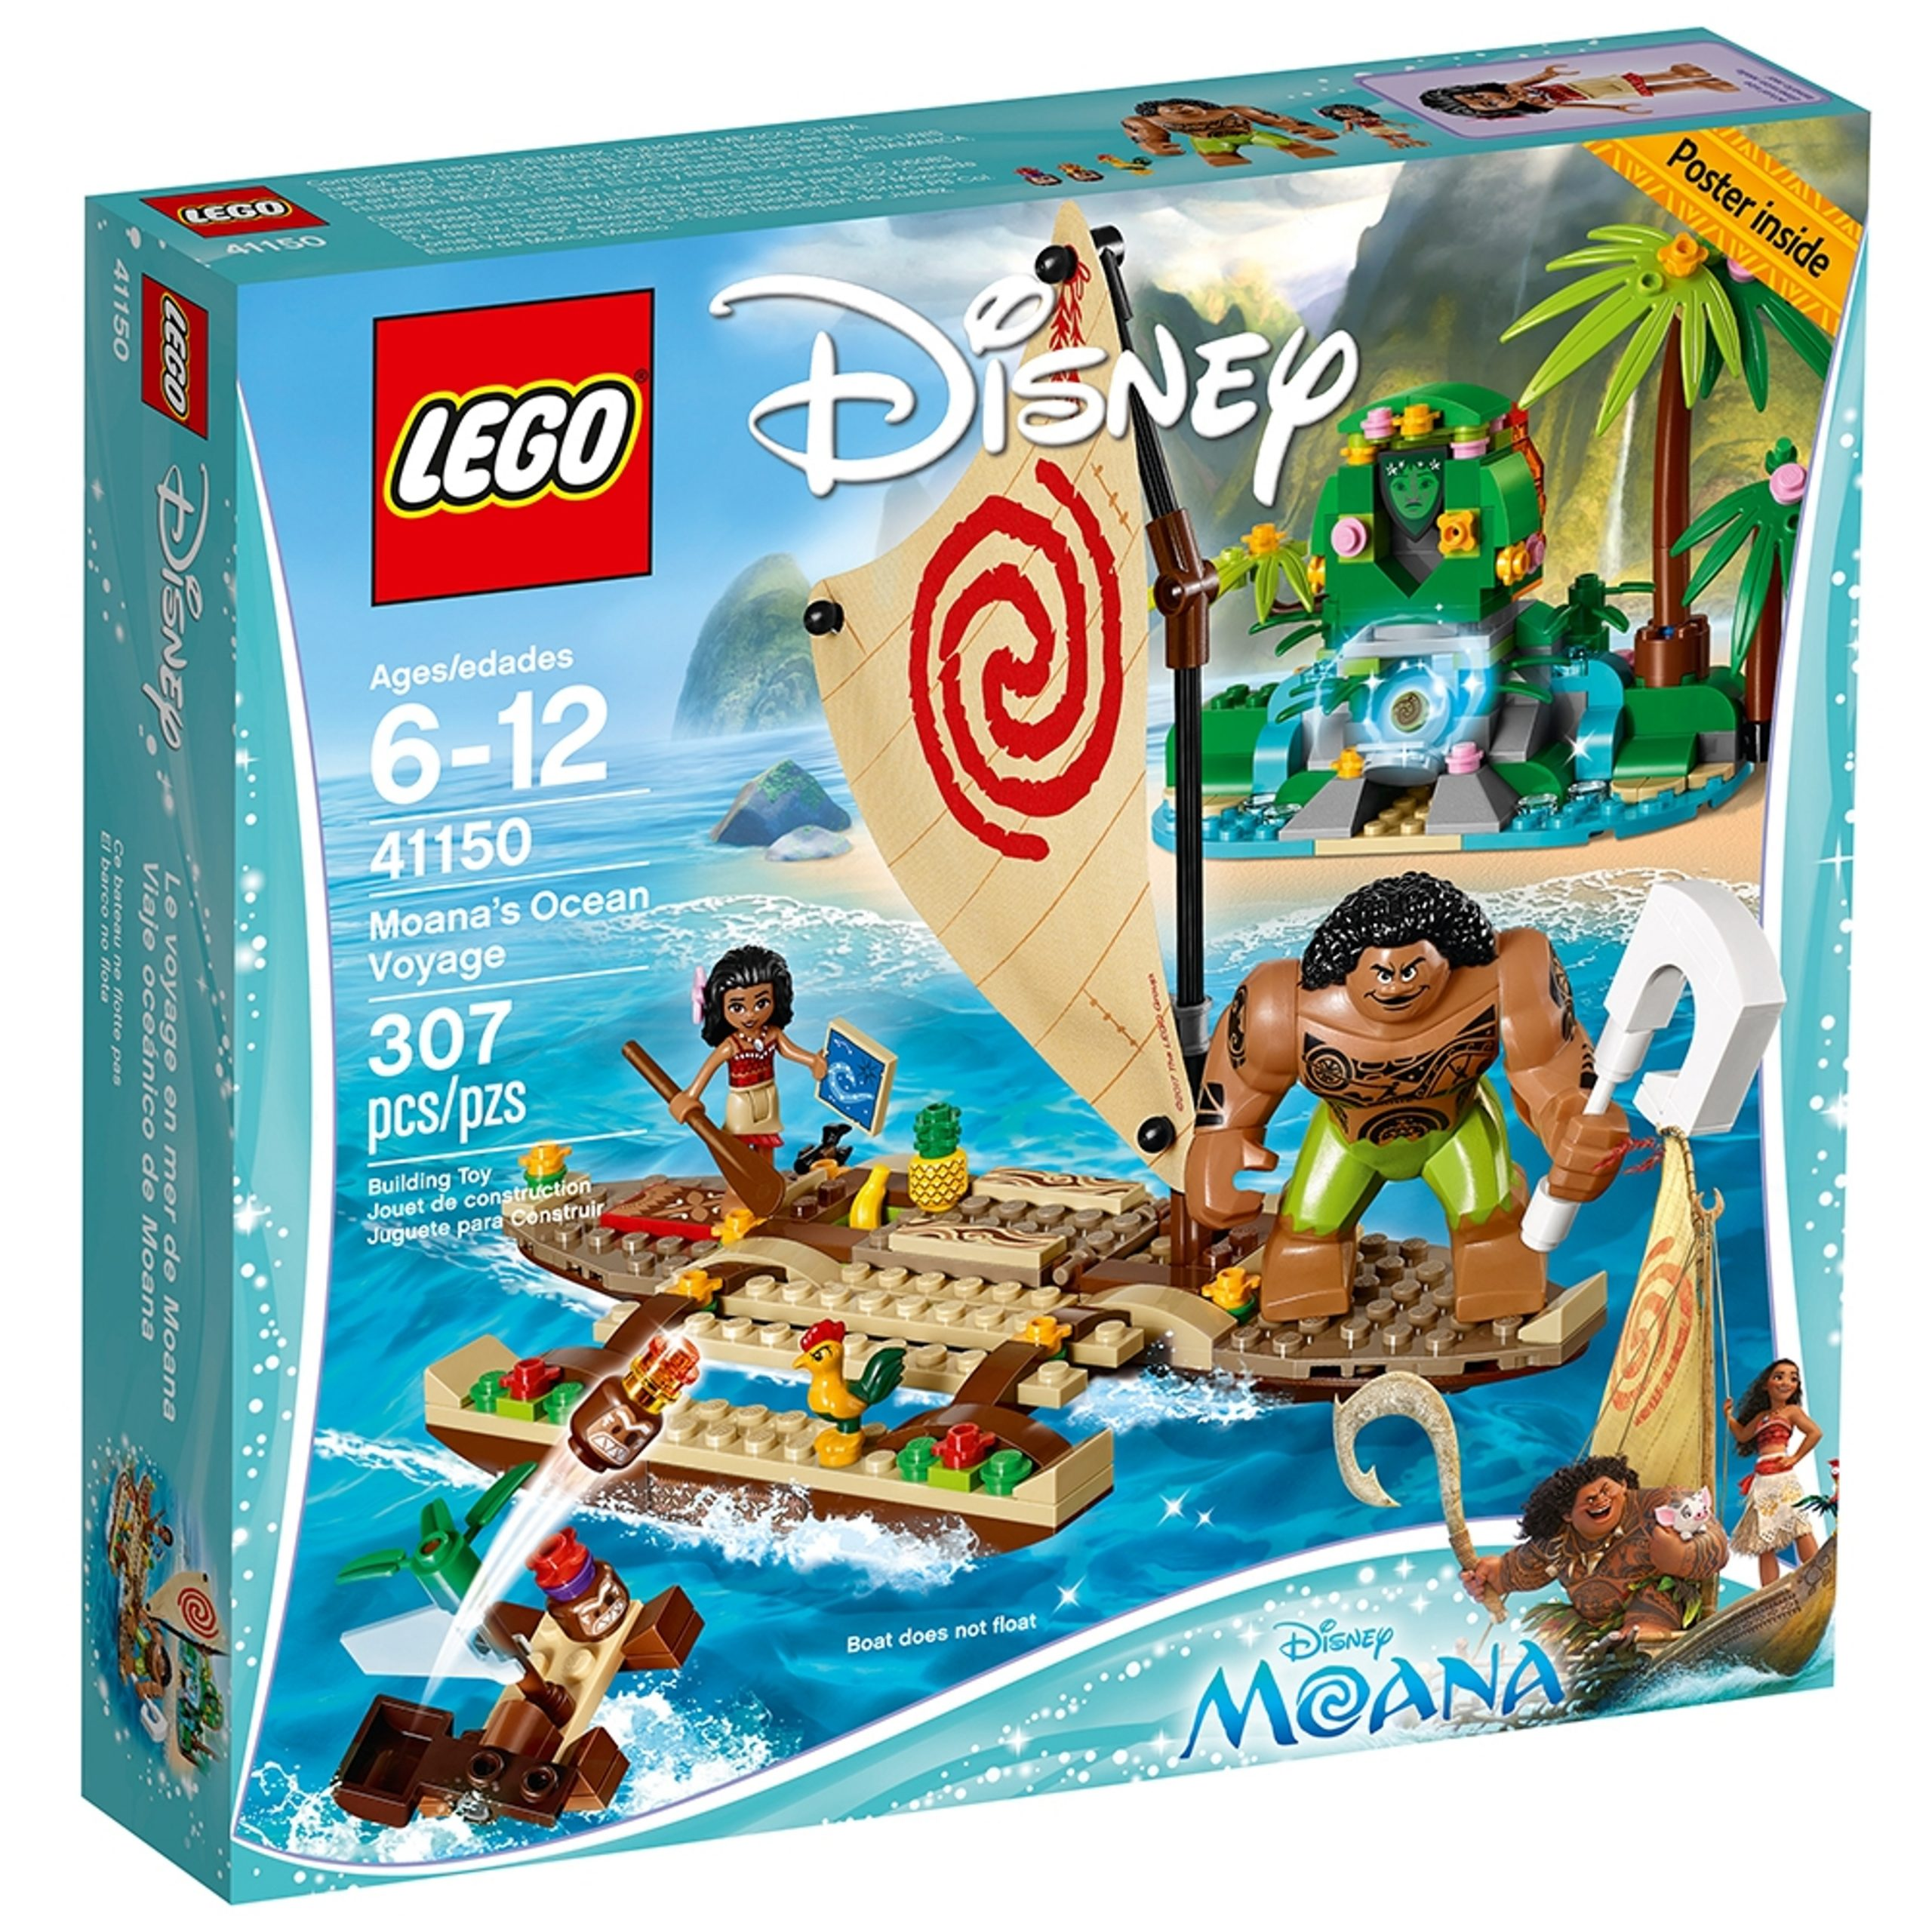 lego 41150 vaiana auf hoher see scaled